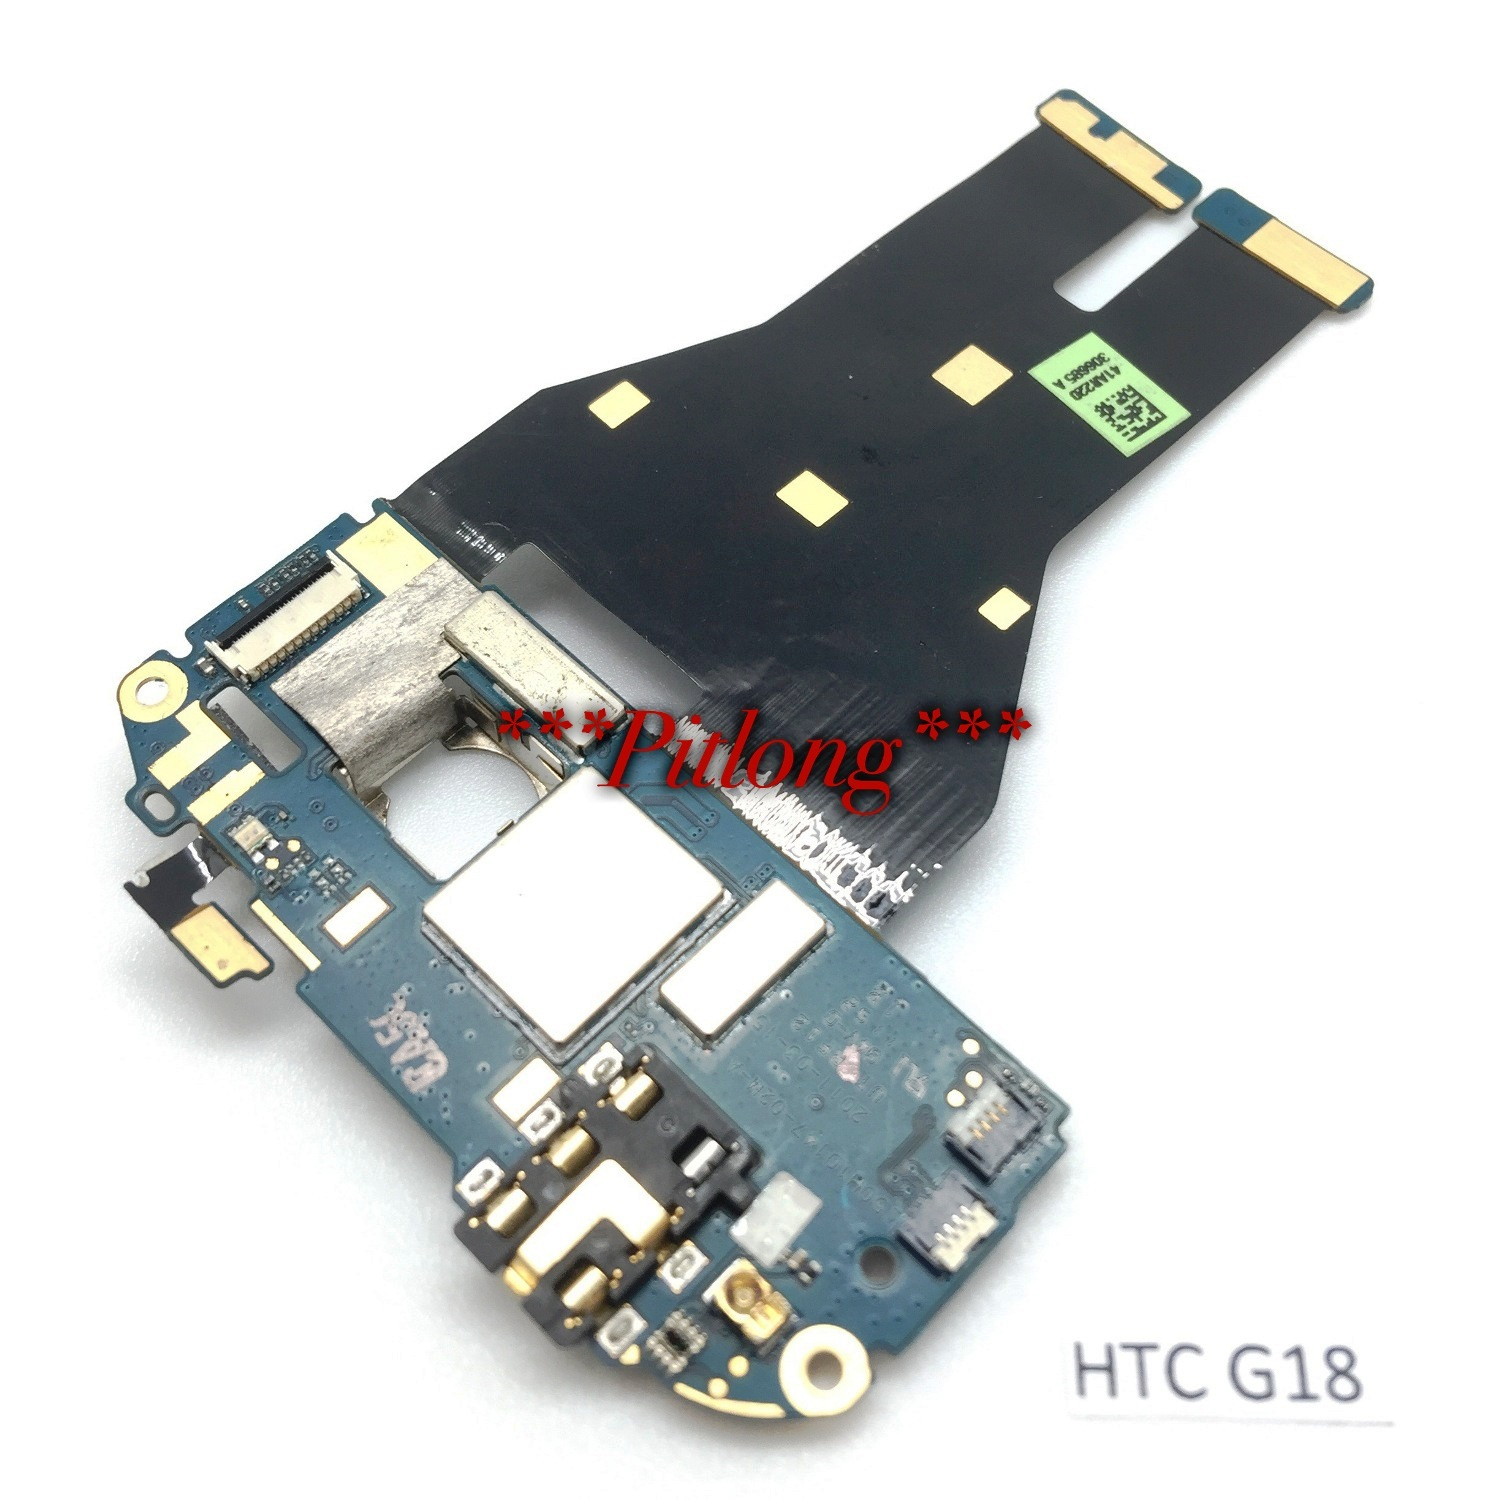 HTC G18 POWER BUTTON ON OFF FLEX CABLE^^ FREE TOOLS